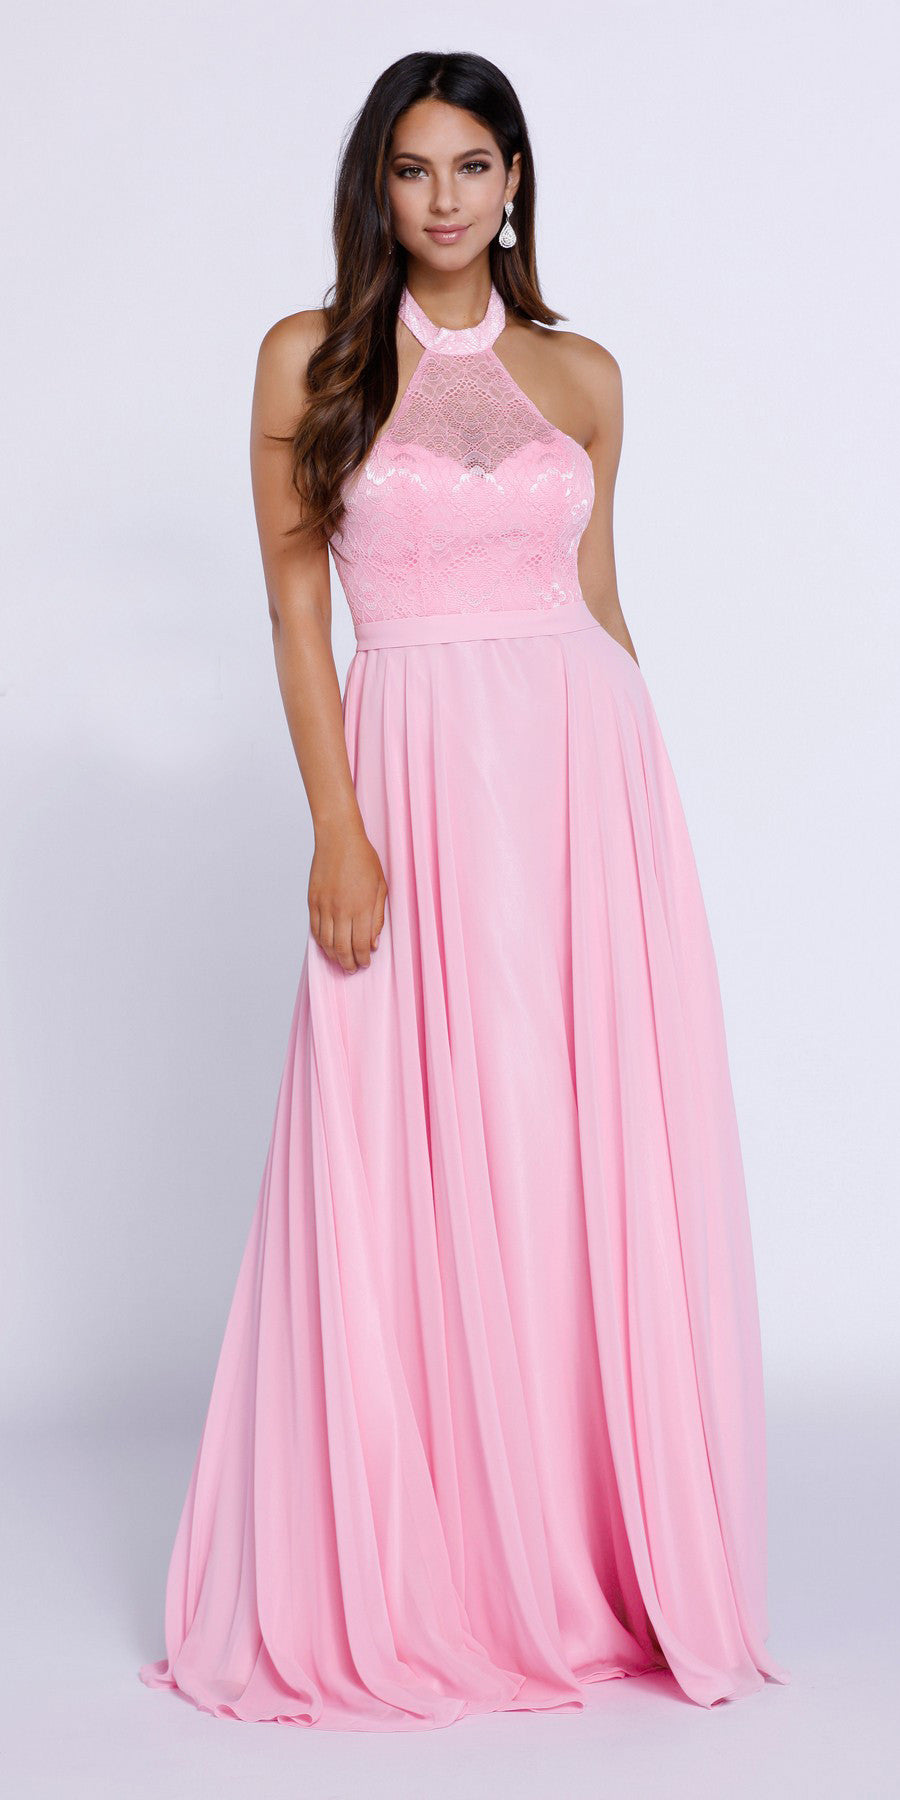 407ad0111273e Baby Pink High Neck Halter Top Prom Dress Chiffon Illusion Neck